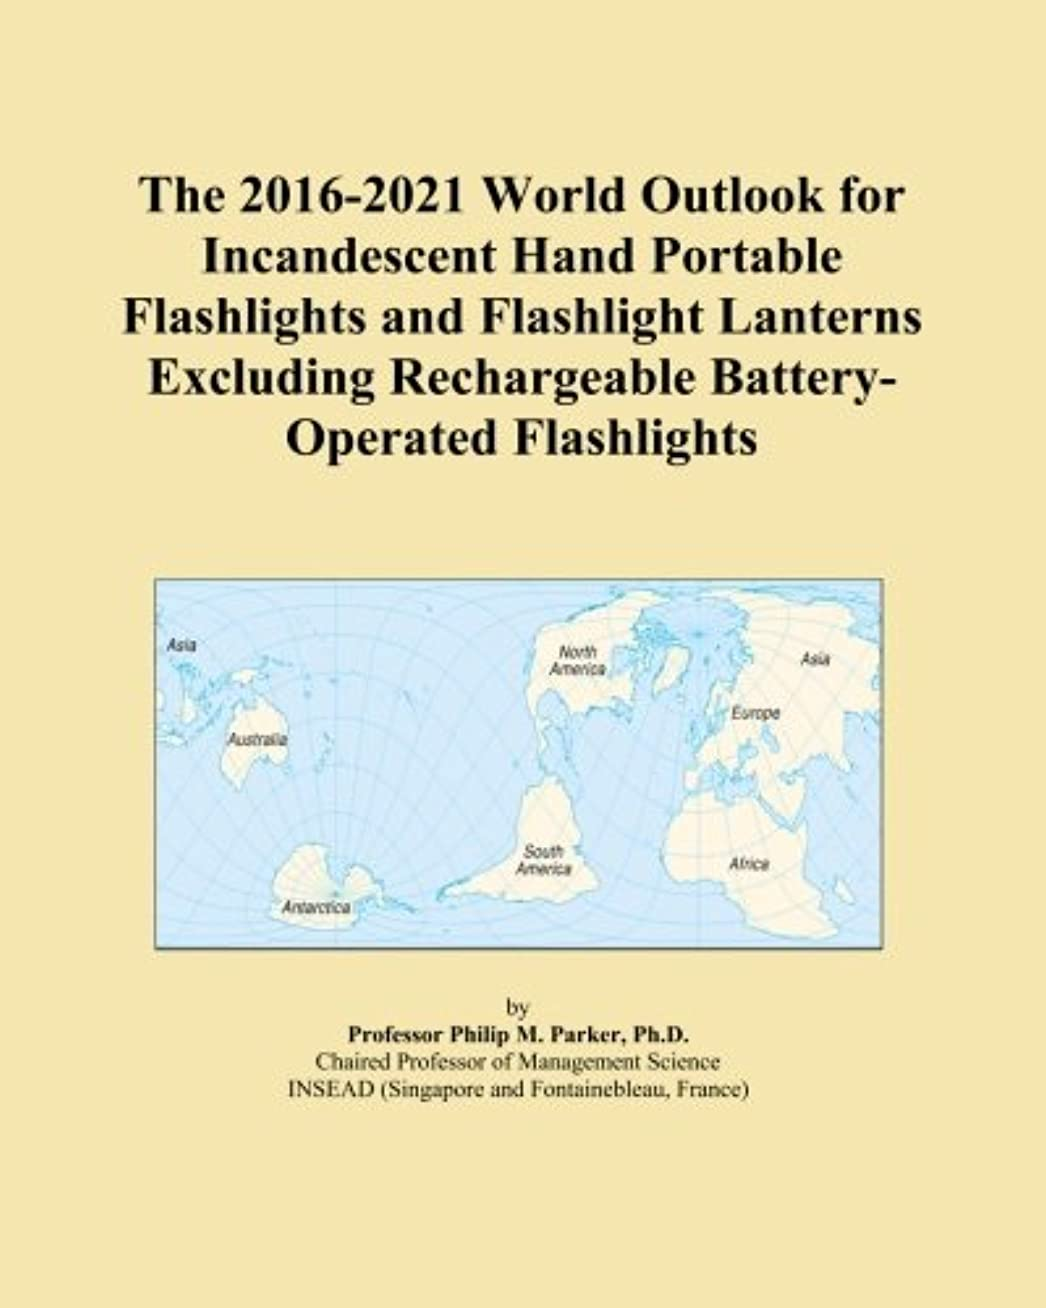 物理学者役職疎外するThe 2016-2021 World Outlook for Incandescent Hand Portable Flashlights and Flashlight Lanterns Excluding Rechargeable Battery-Operated Flashlights